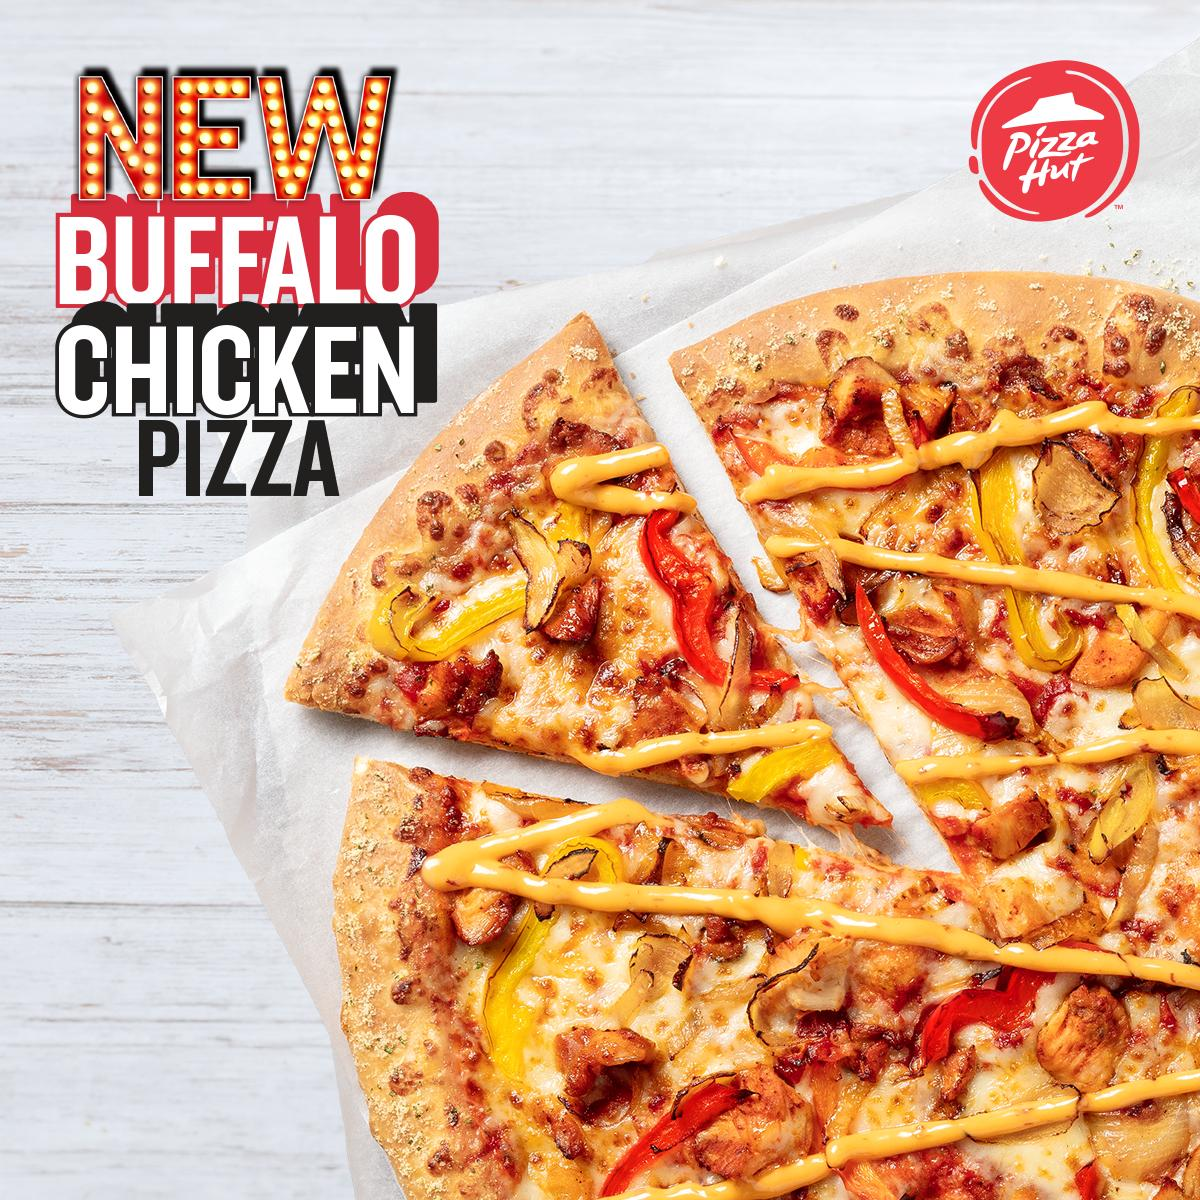 Whether you're having a movie night with your friends, or you've got the match on the TV, make sure you've got our brand new Buffalo Chicken pizza by your side this weekend 🙌 https://t.co/A78WHZSyO1